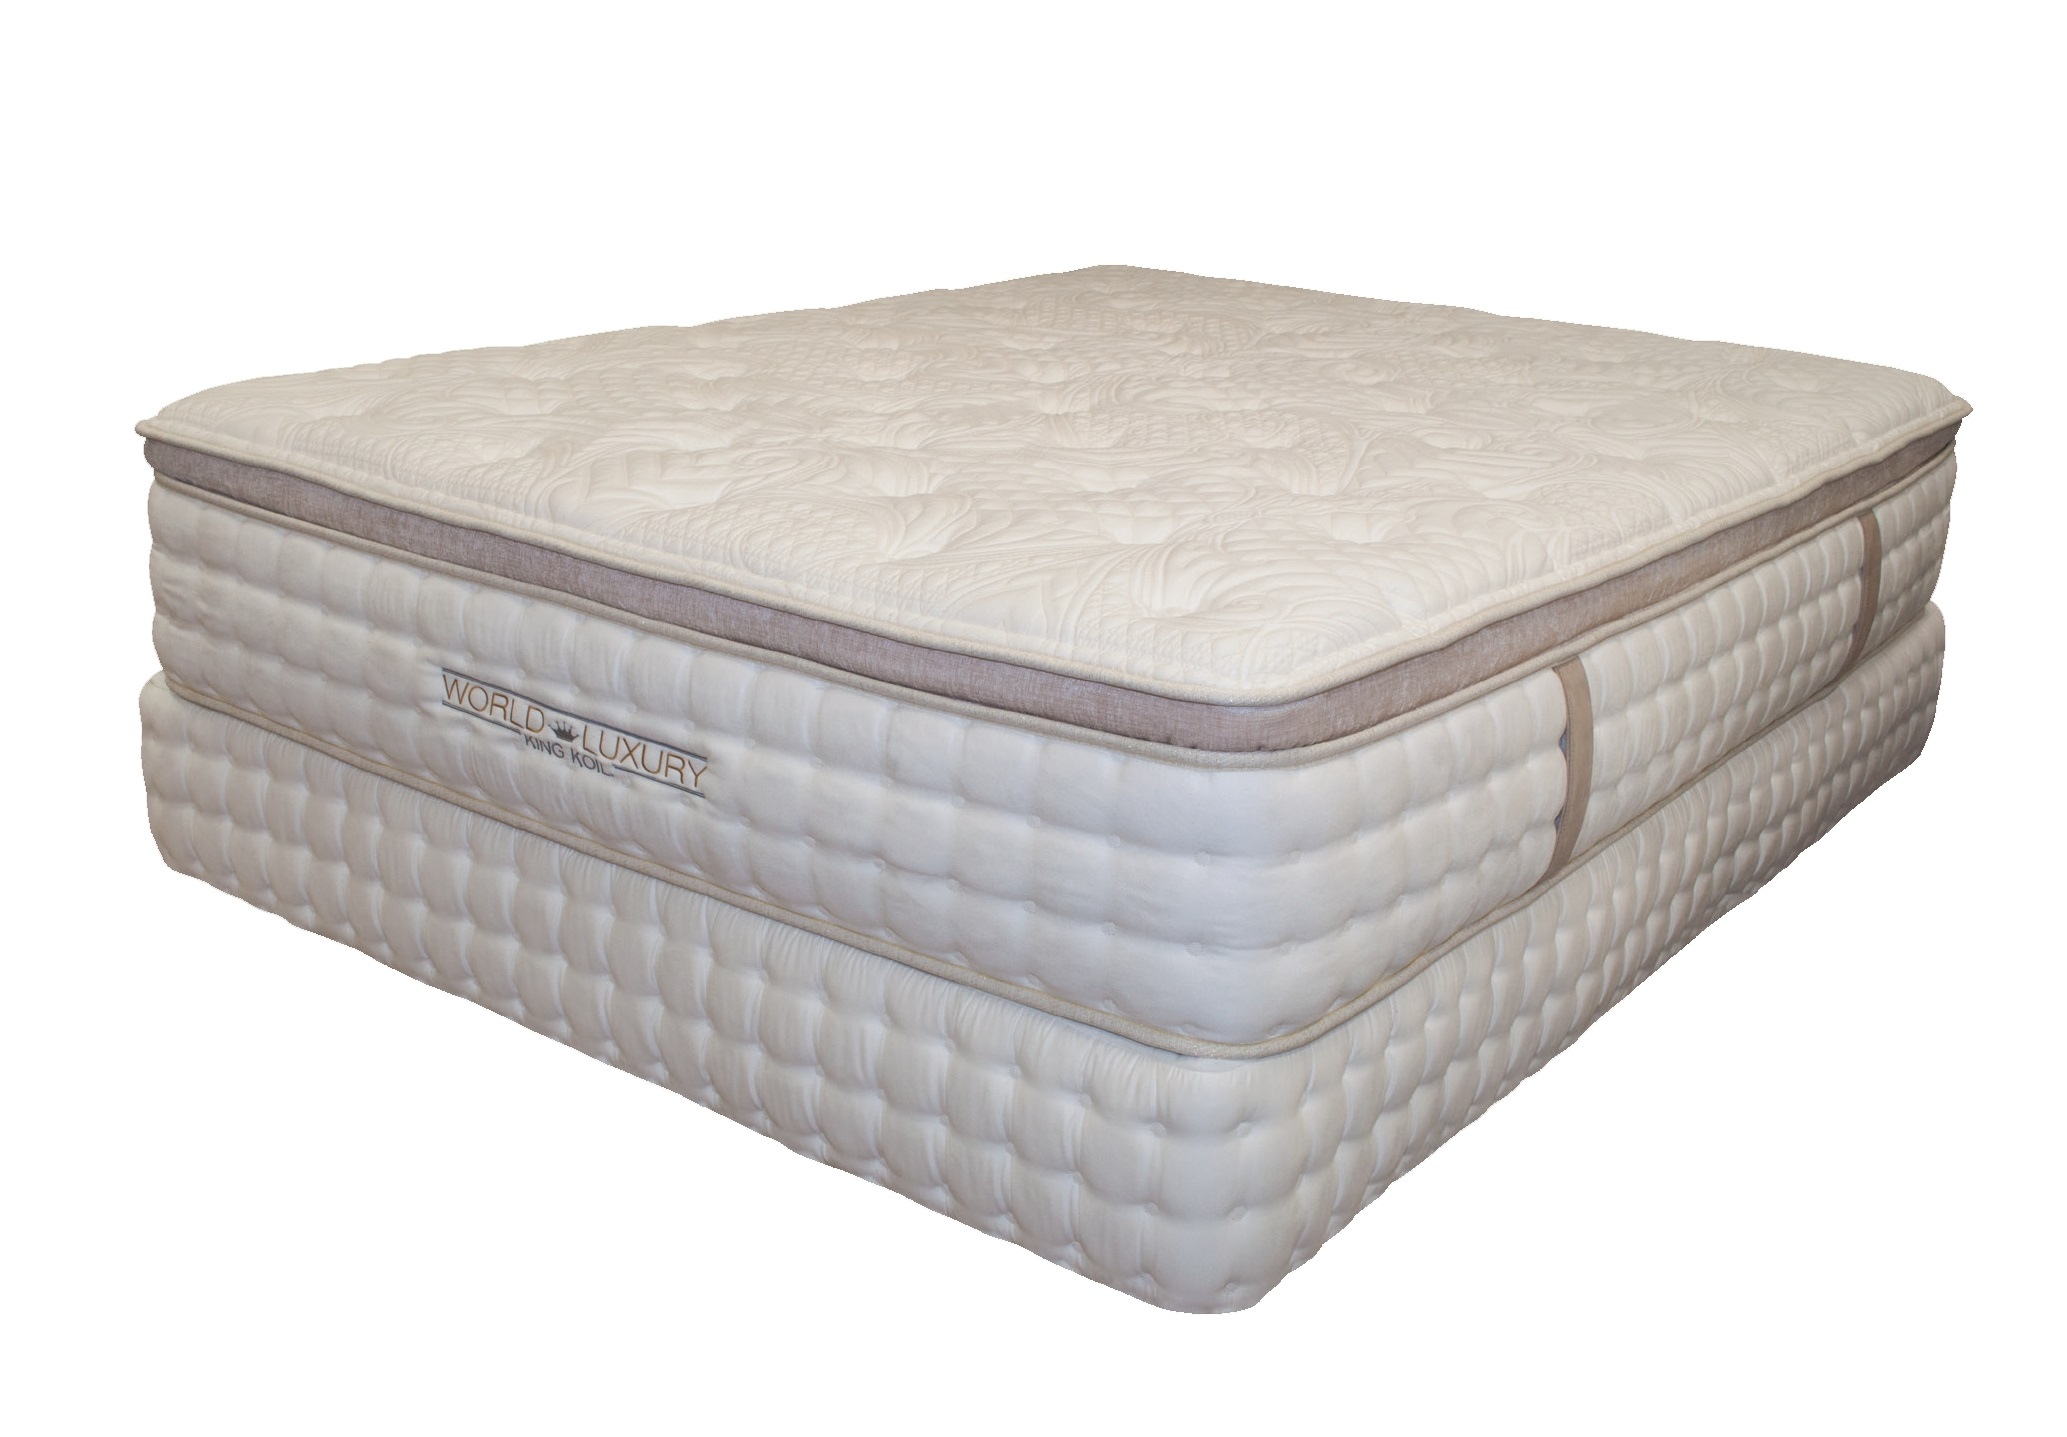 Sleeptronic devonshire ept queen mattress box set dallas tx mattress bed frames Queen bed and mattress